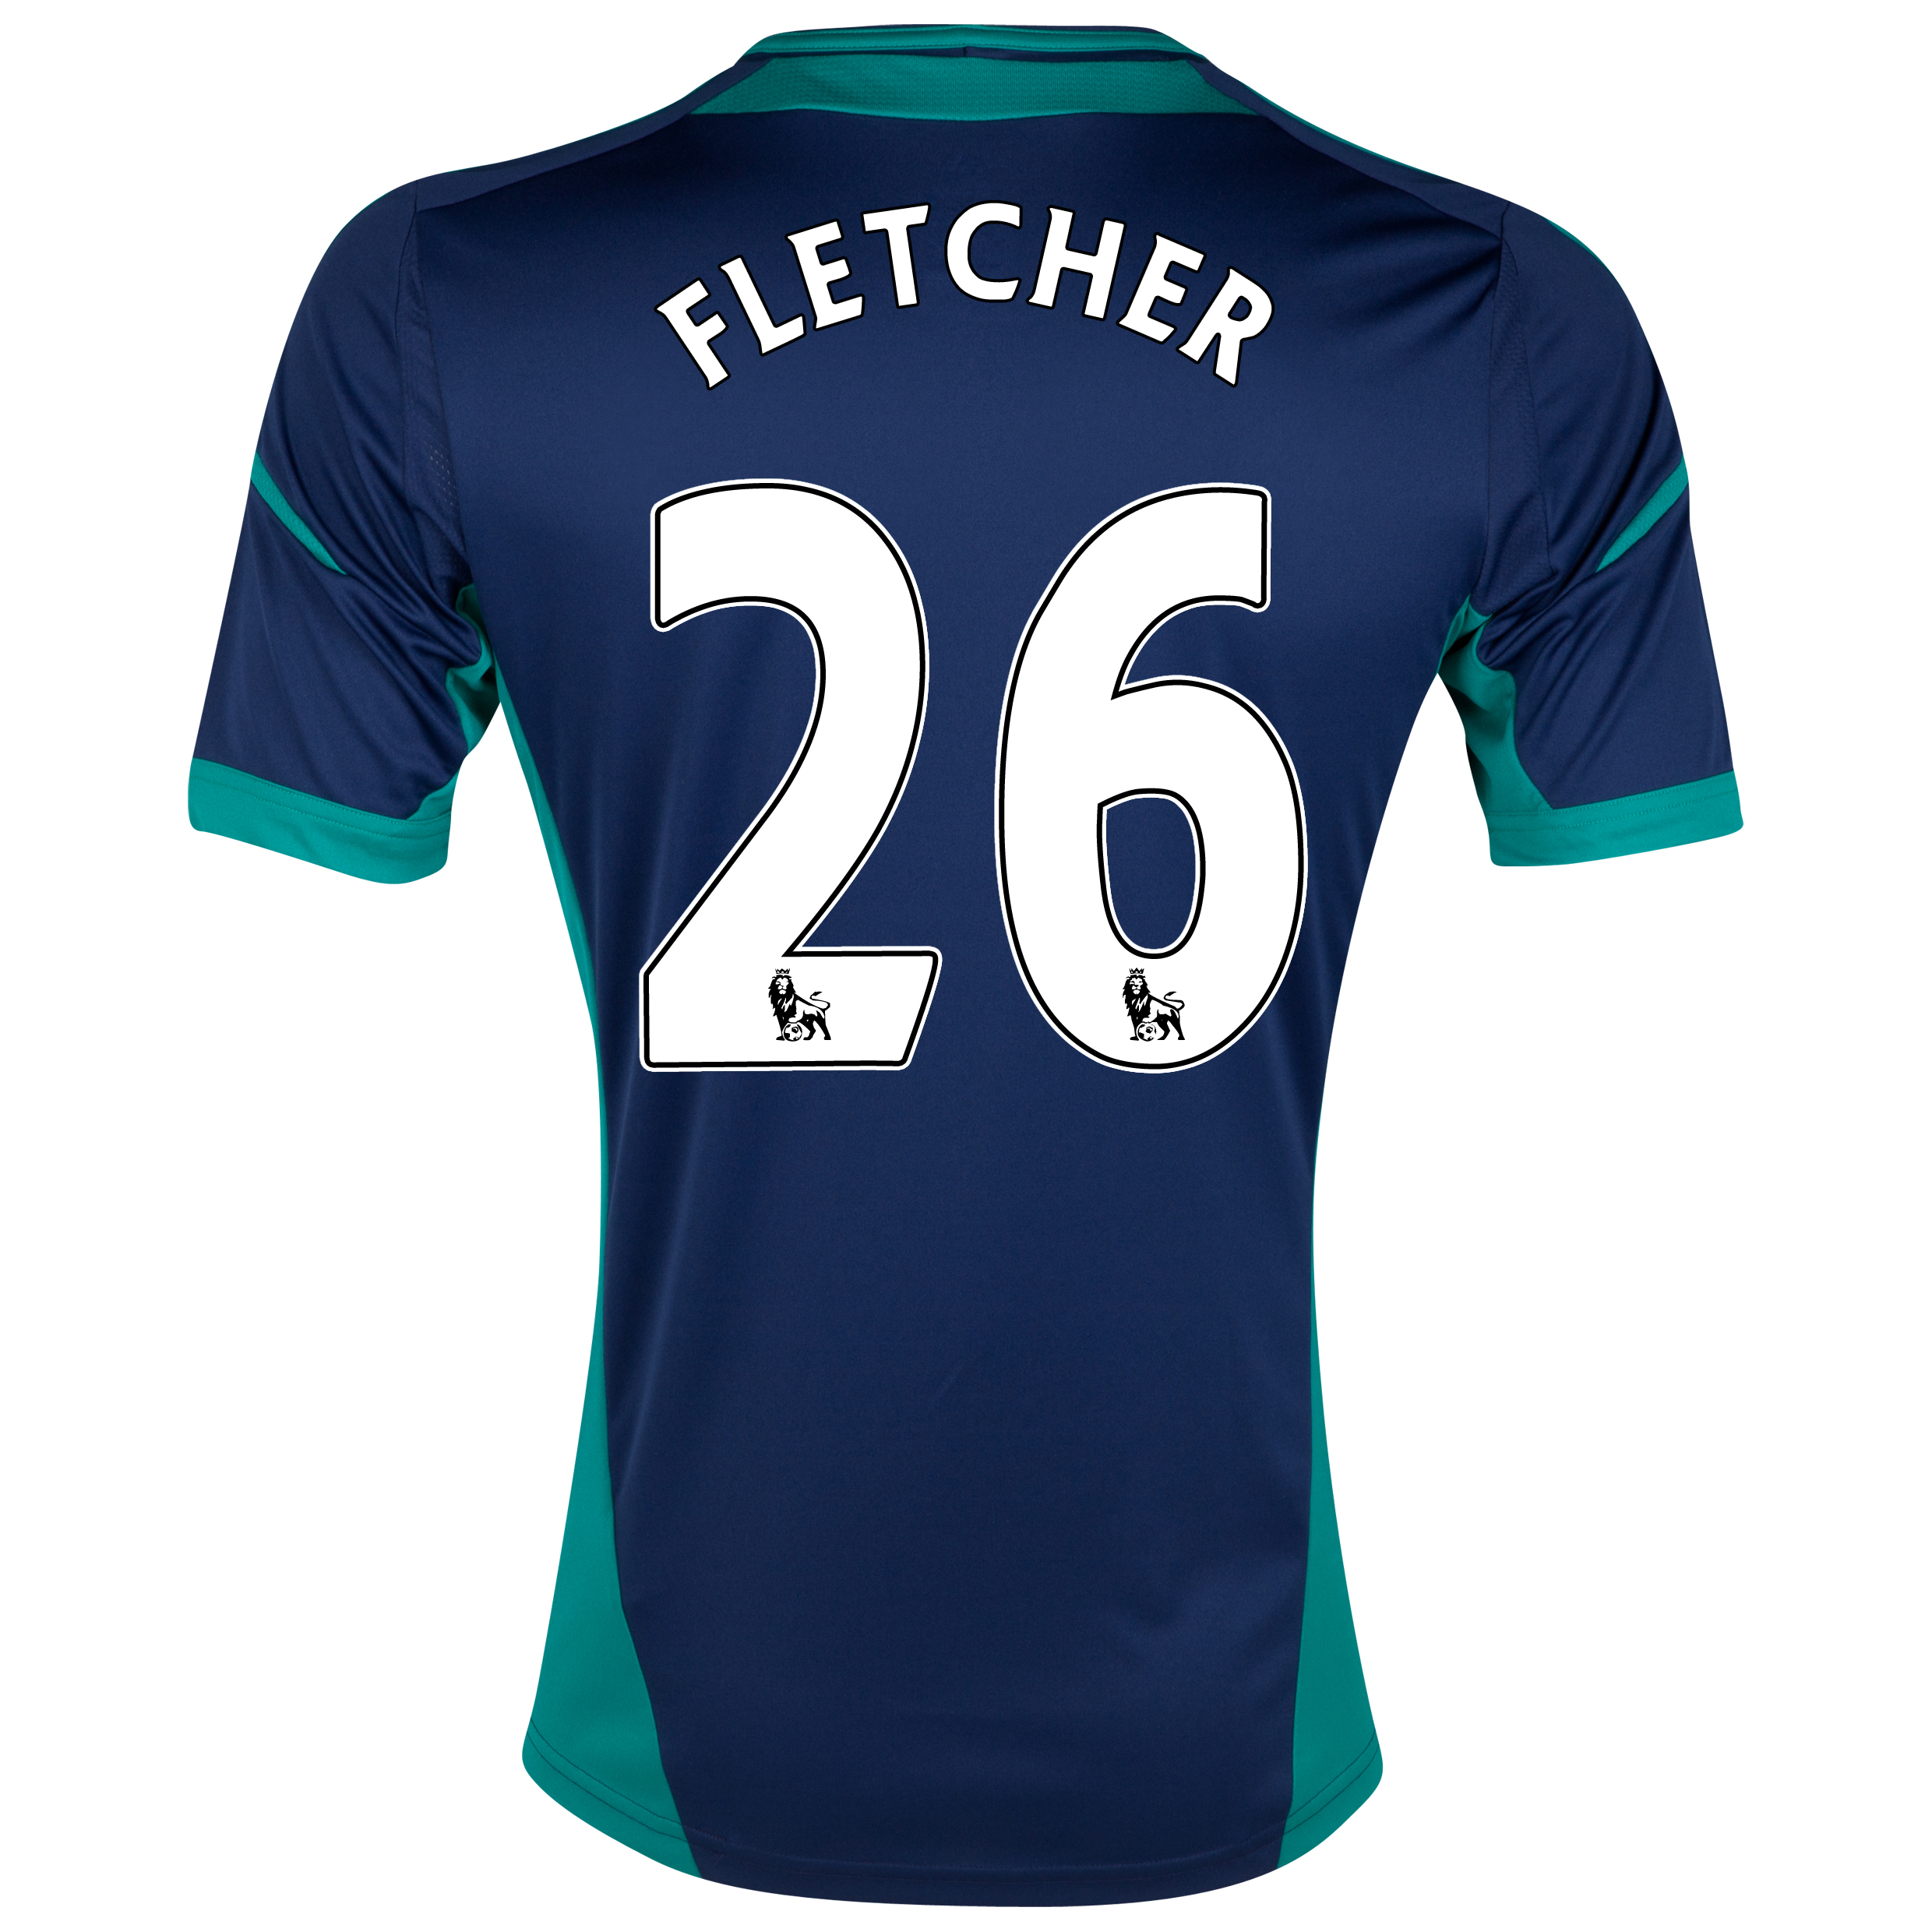 Sunderland Away Shirt 2012/13 - Junior with Fletcher 26 printing